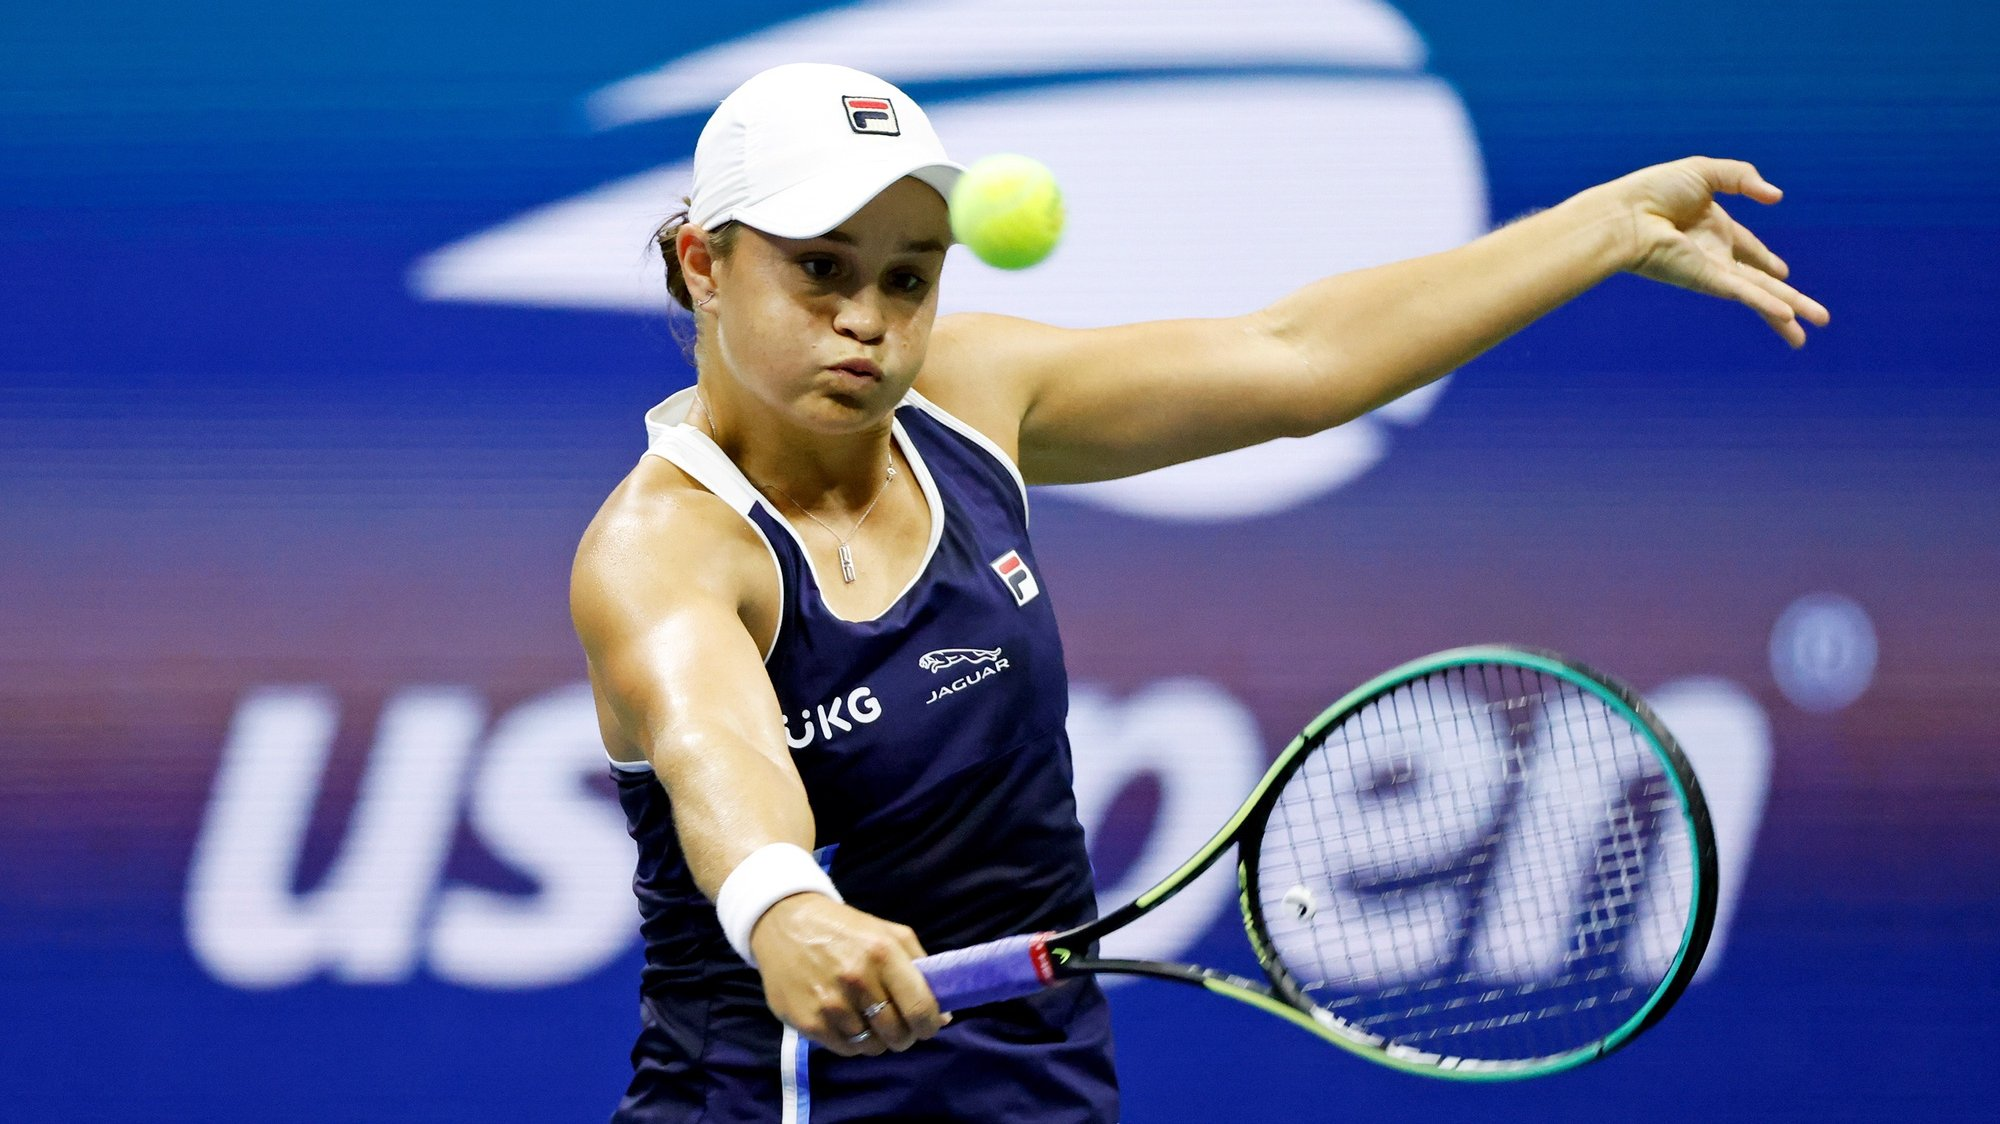 epa09448357 Ashleigh Barty of the Australia in action against Shelby Rogers of the USA during their match on the sixth day of the US Open Tennis Championships at the USTA National Tennis Center in Flushing Meadows, New York, USA, 04 September 2021. The US Open runs from 30 August through 12 September.  EPA/JASON SZENES